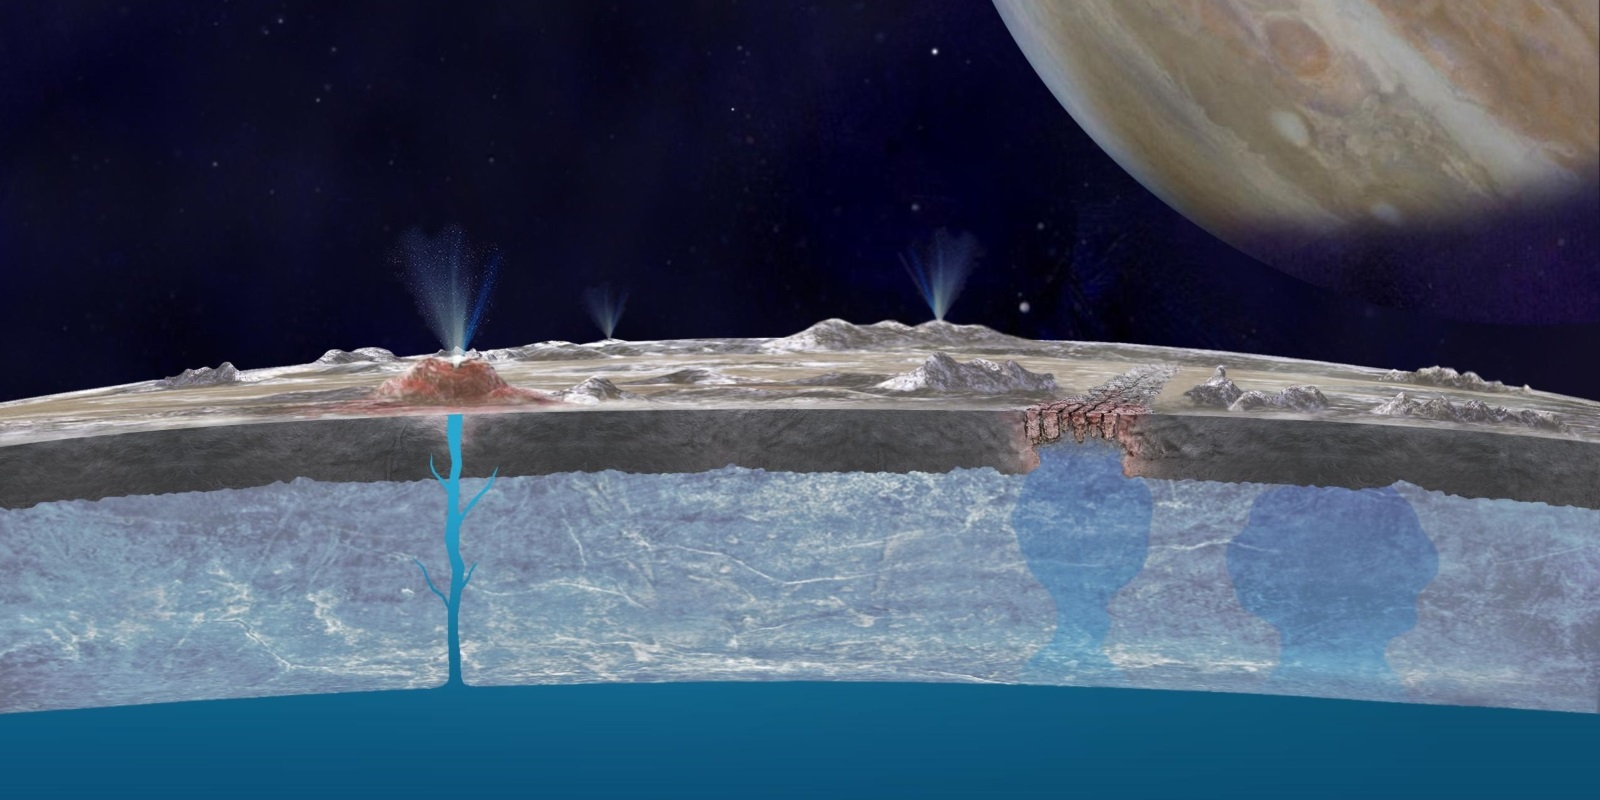 Artist's concept of a subsurface ocean on Jupiter's moon Europa.